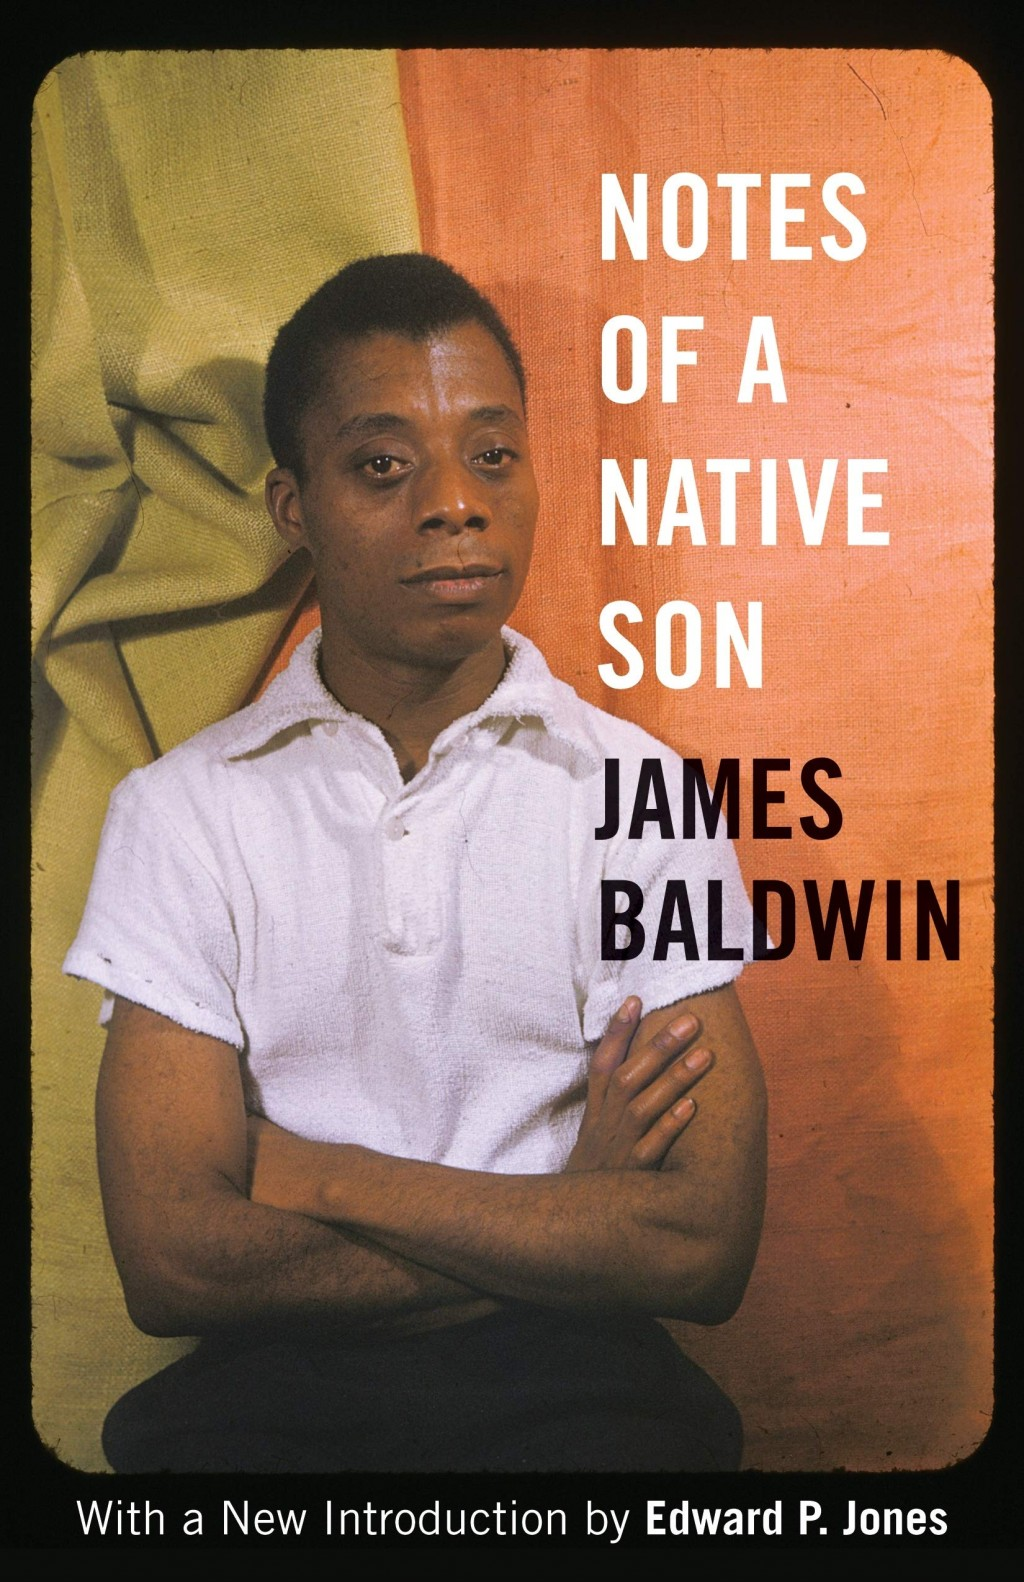 014 Essay Example 81exdnt0zvl James Baldwin Collected Wondrous Essays Google Books Pdf Table Of Contents Large